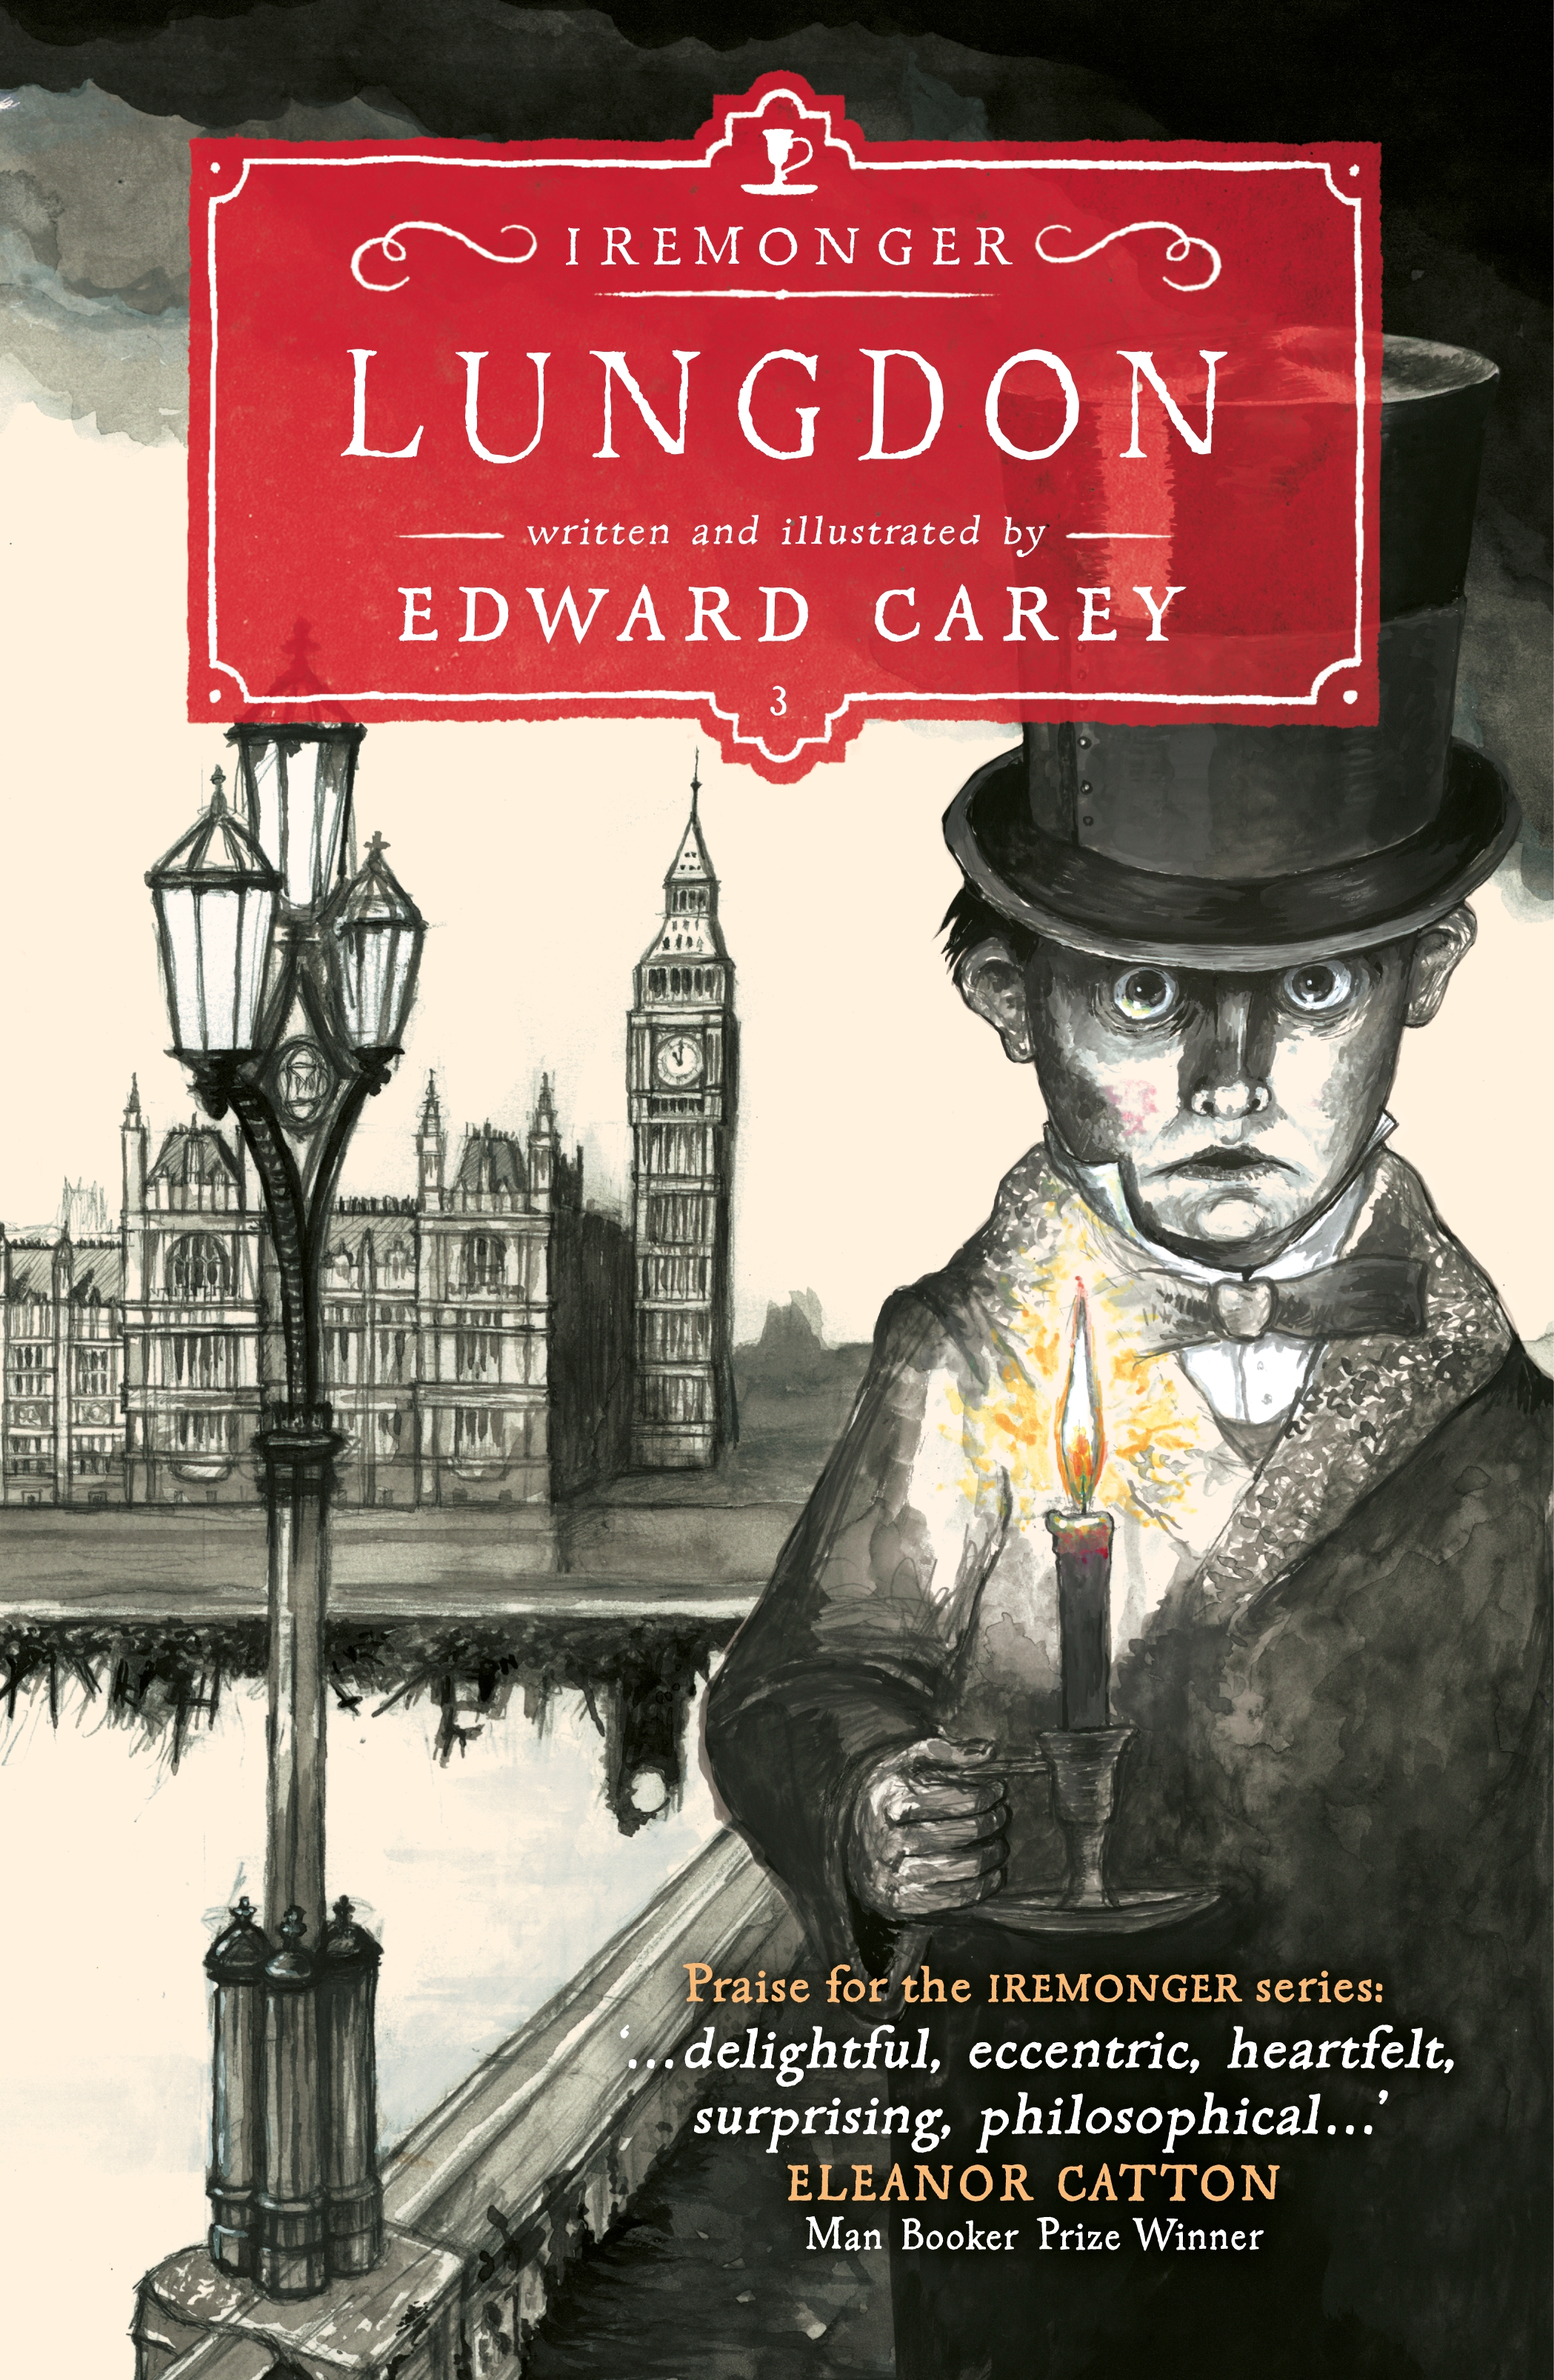 Lungdon by Edward Carey